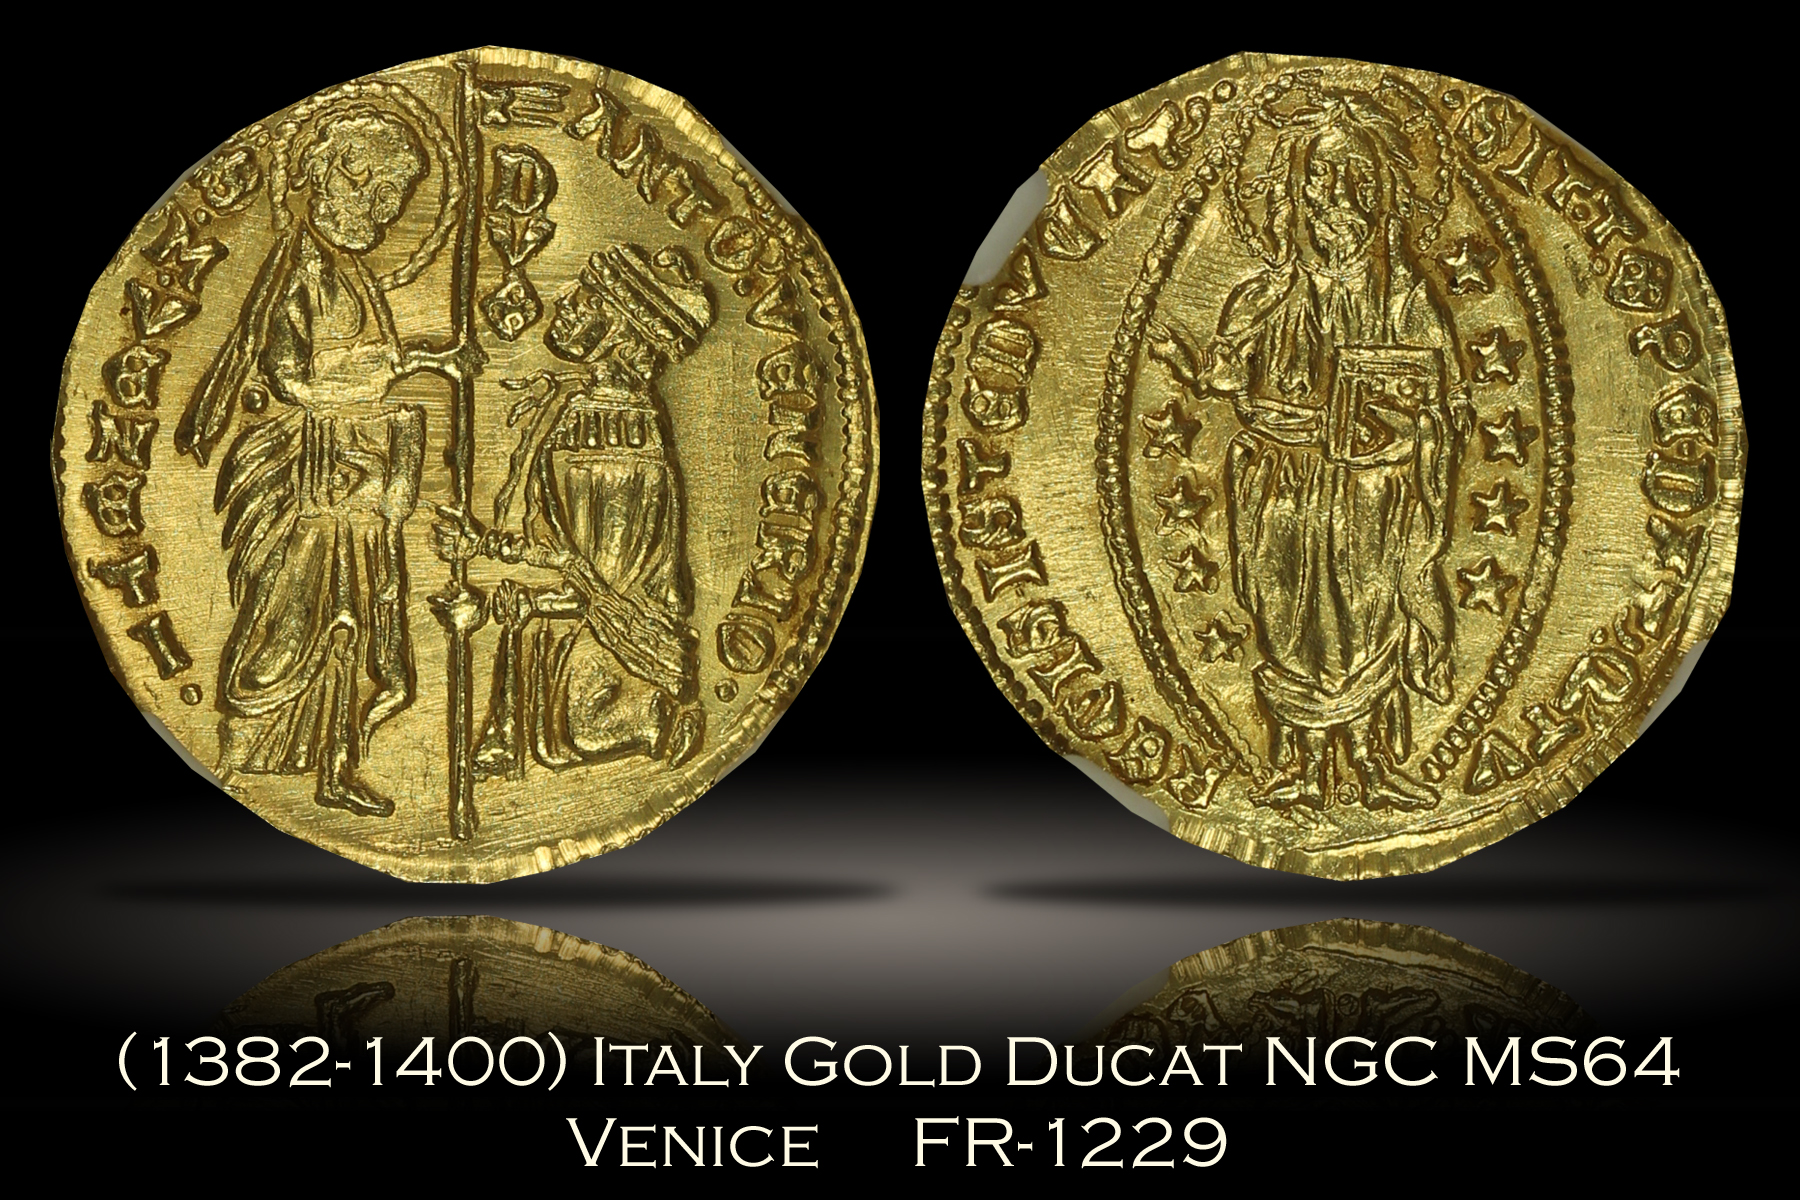 1382-1400 Italy Gold Ducat Venice FR-1229 NGC MS64